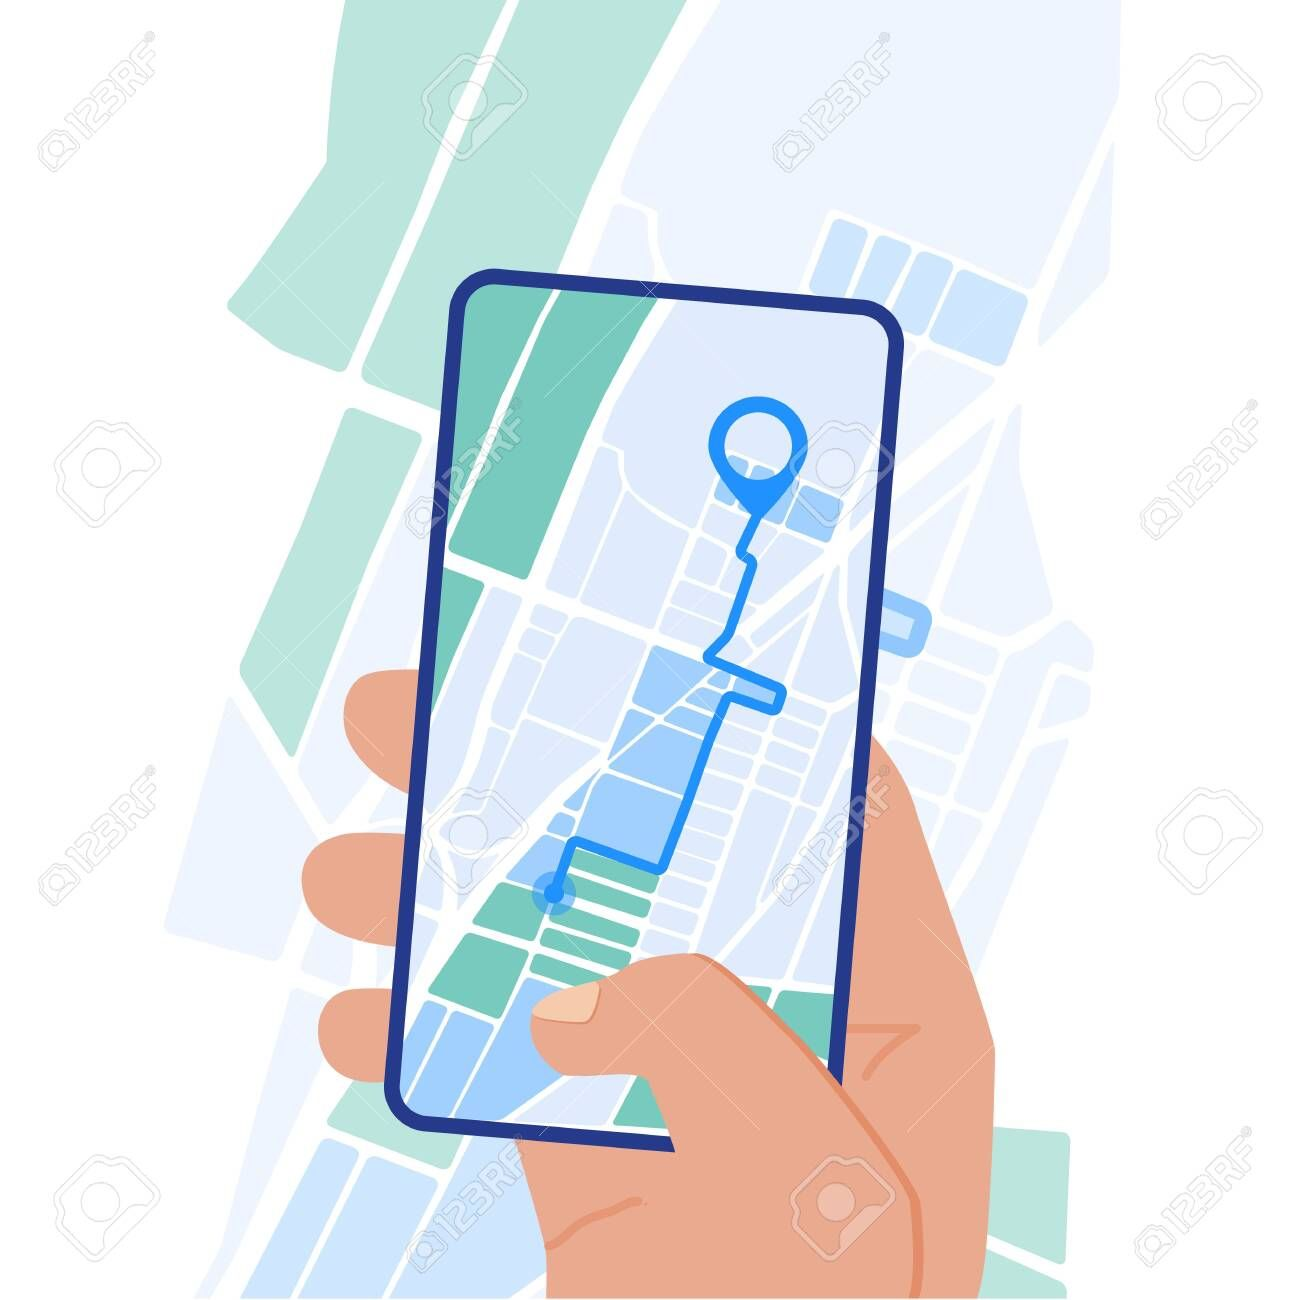 Flat Design Vector Illustration Of Hand Holding Smartphone With